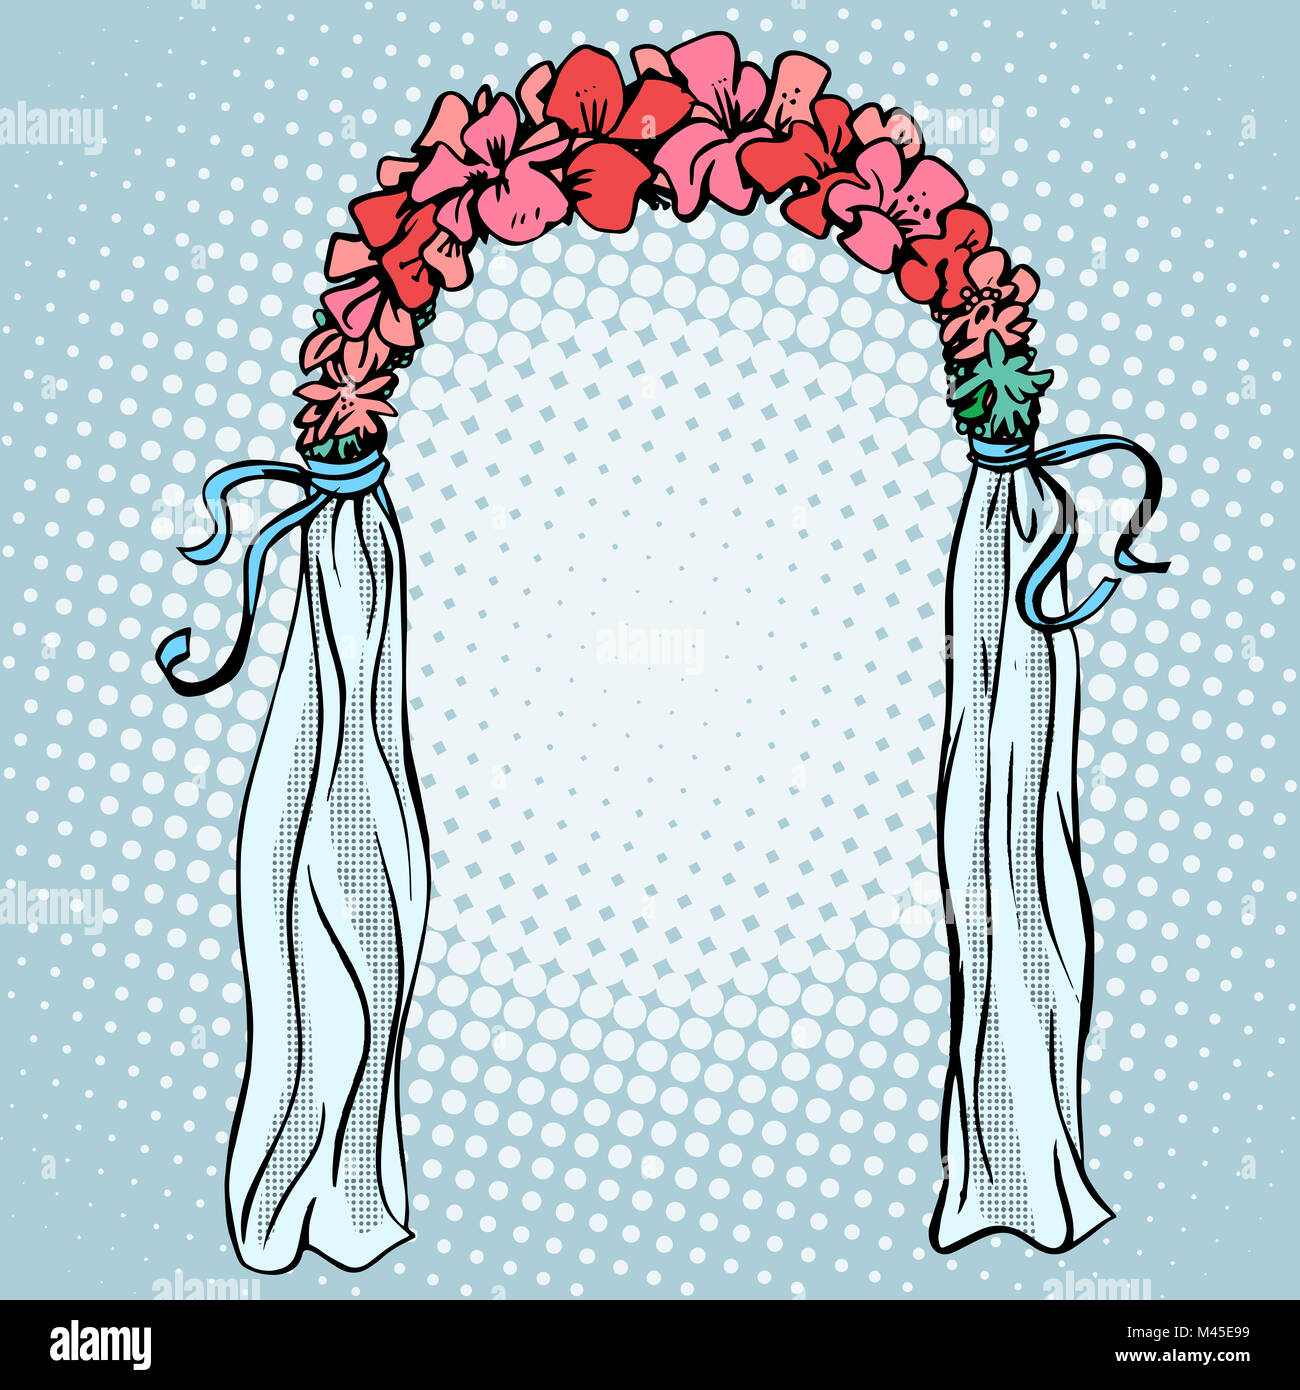 Wedding gate for the betrothal - Stock Image